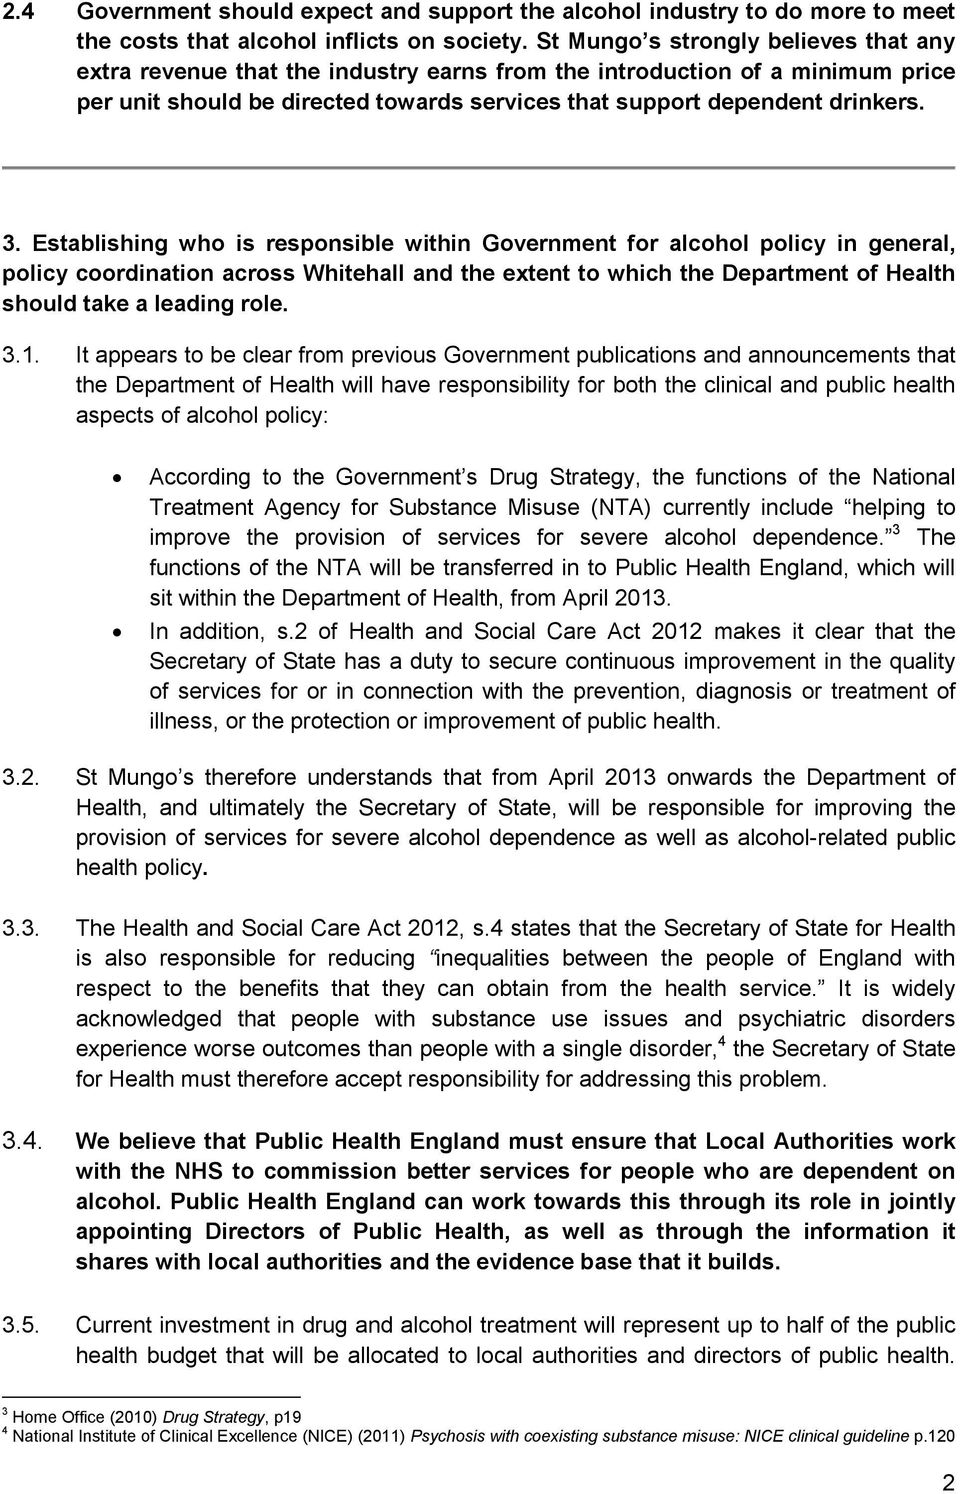 Establishing who is responsible within Government for alcohol policy in general, policy coordination across Whitehall and the extent to which the Department of Health should take a leading role. 3.1.